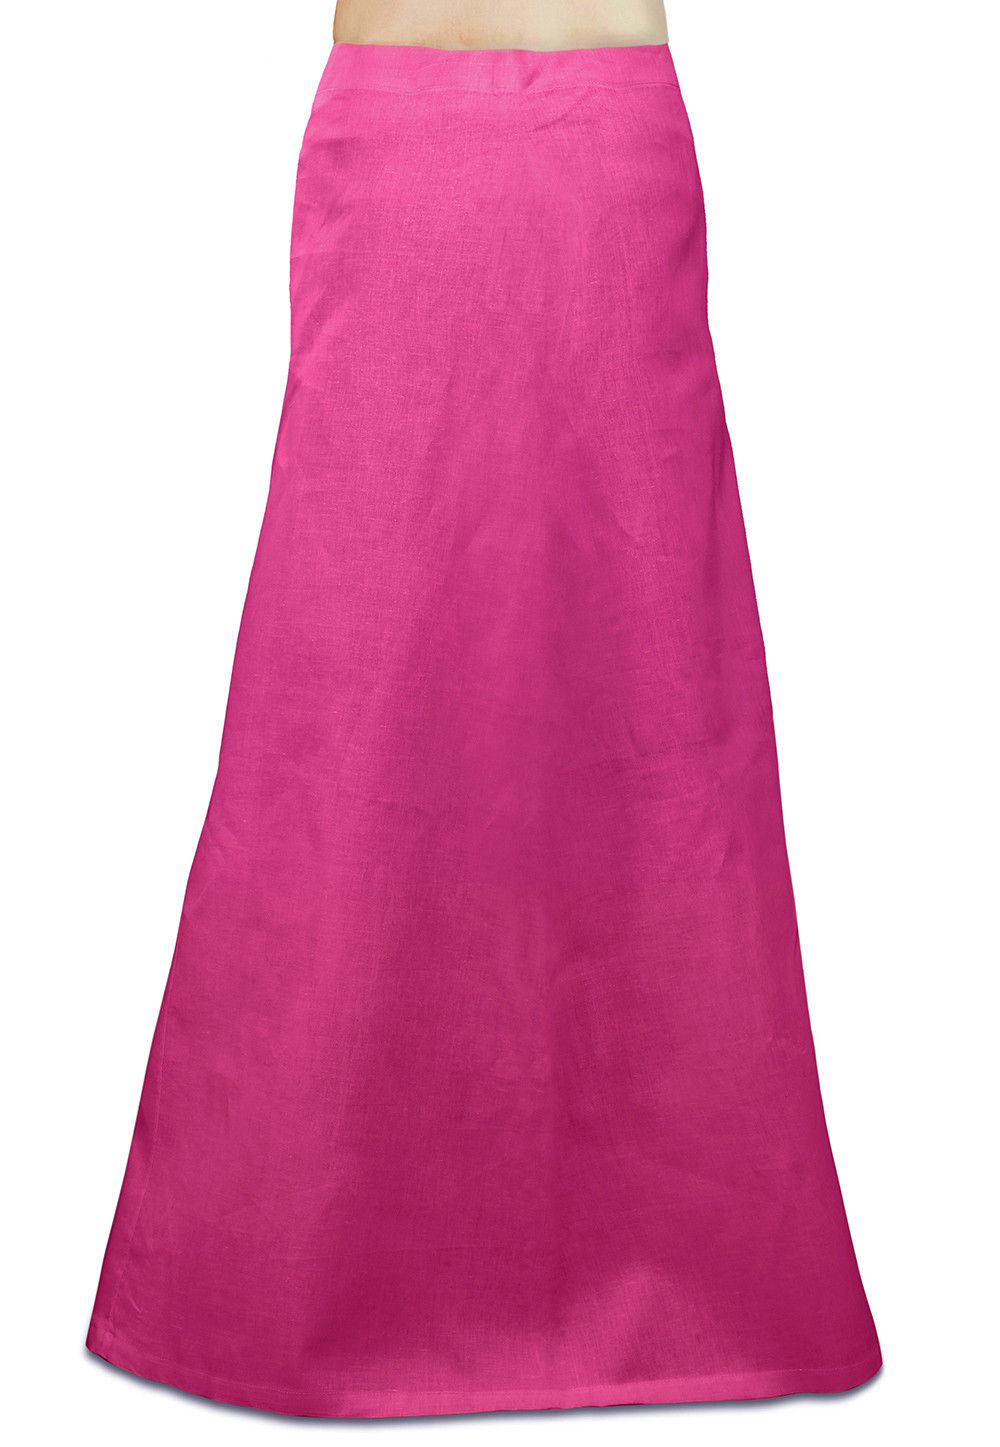 Cotton Petticoat in Fuchsia